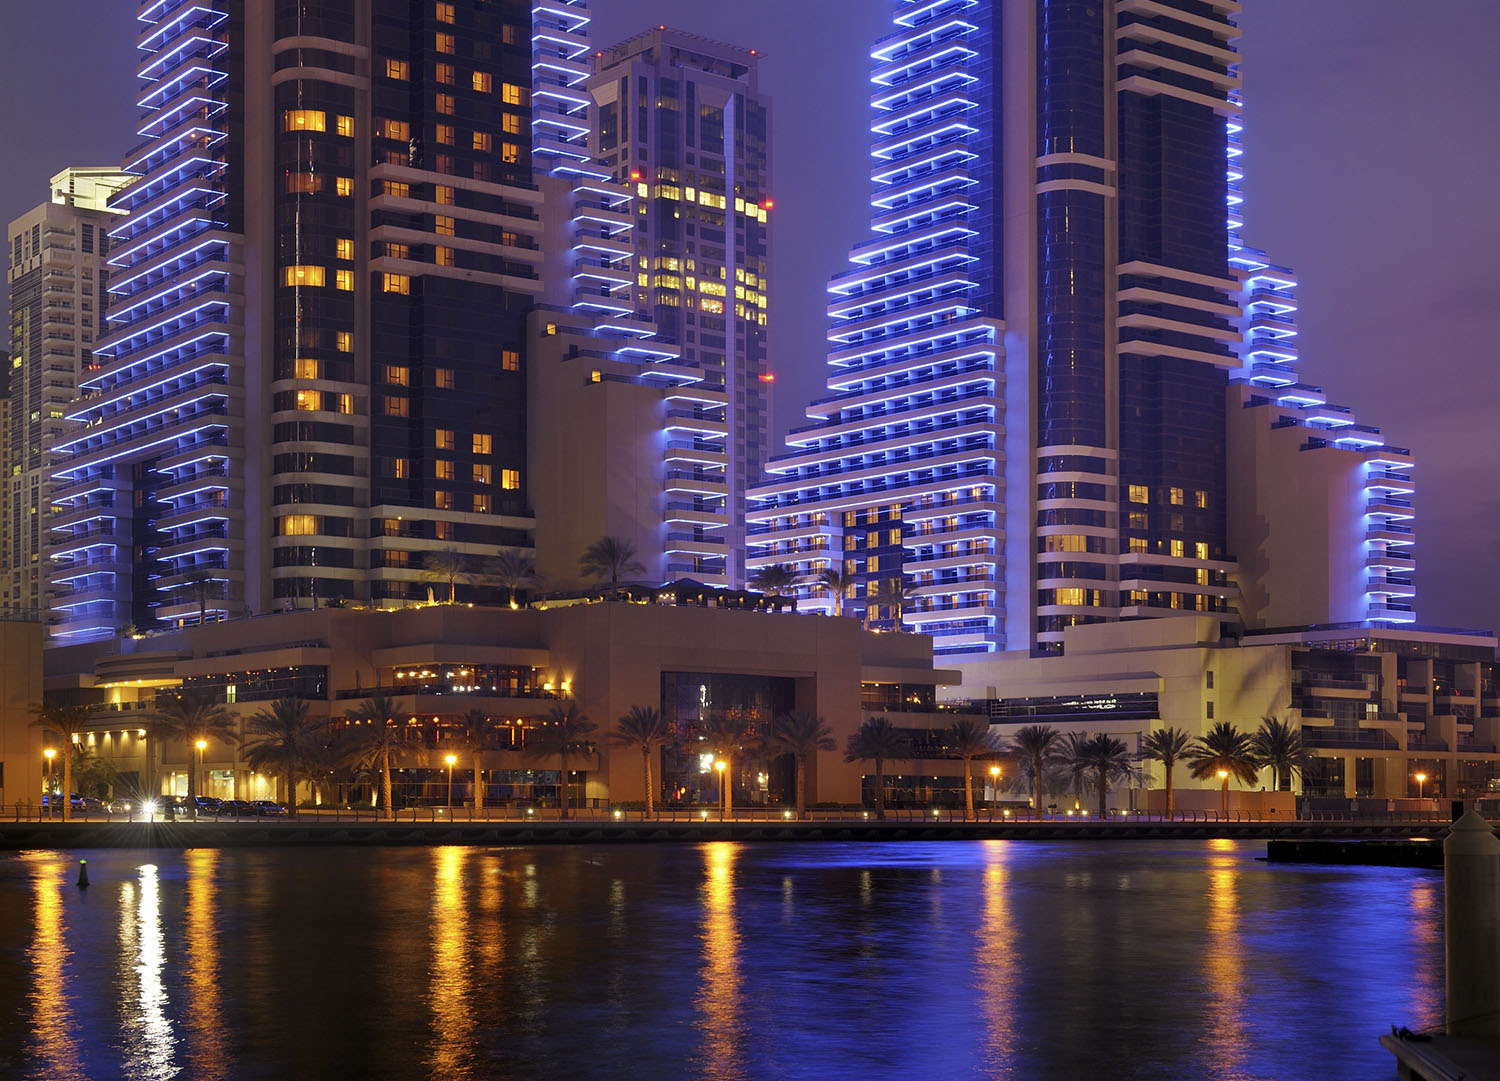 Grosvenor house dubai review hotels accommodation for Luxury travel in dubai